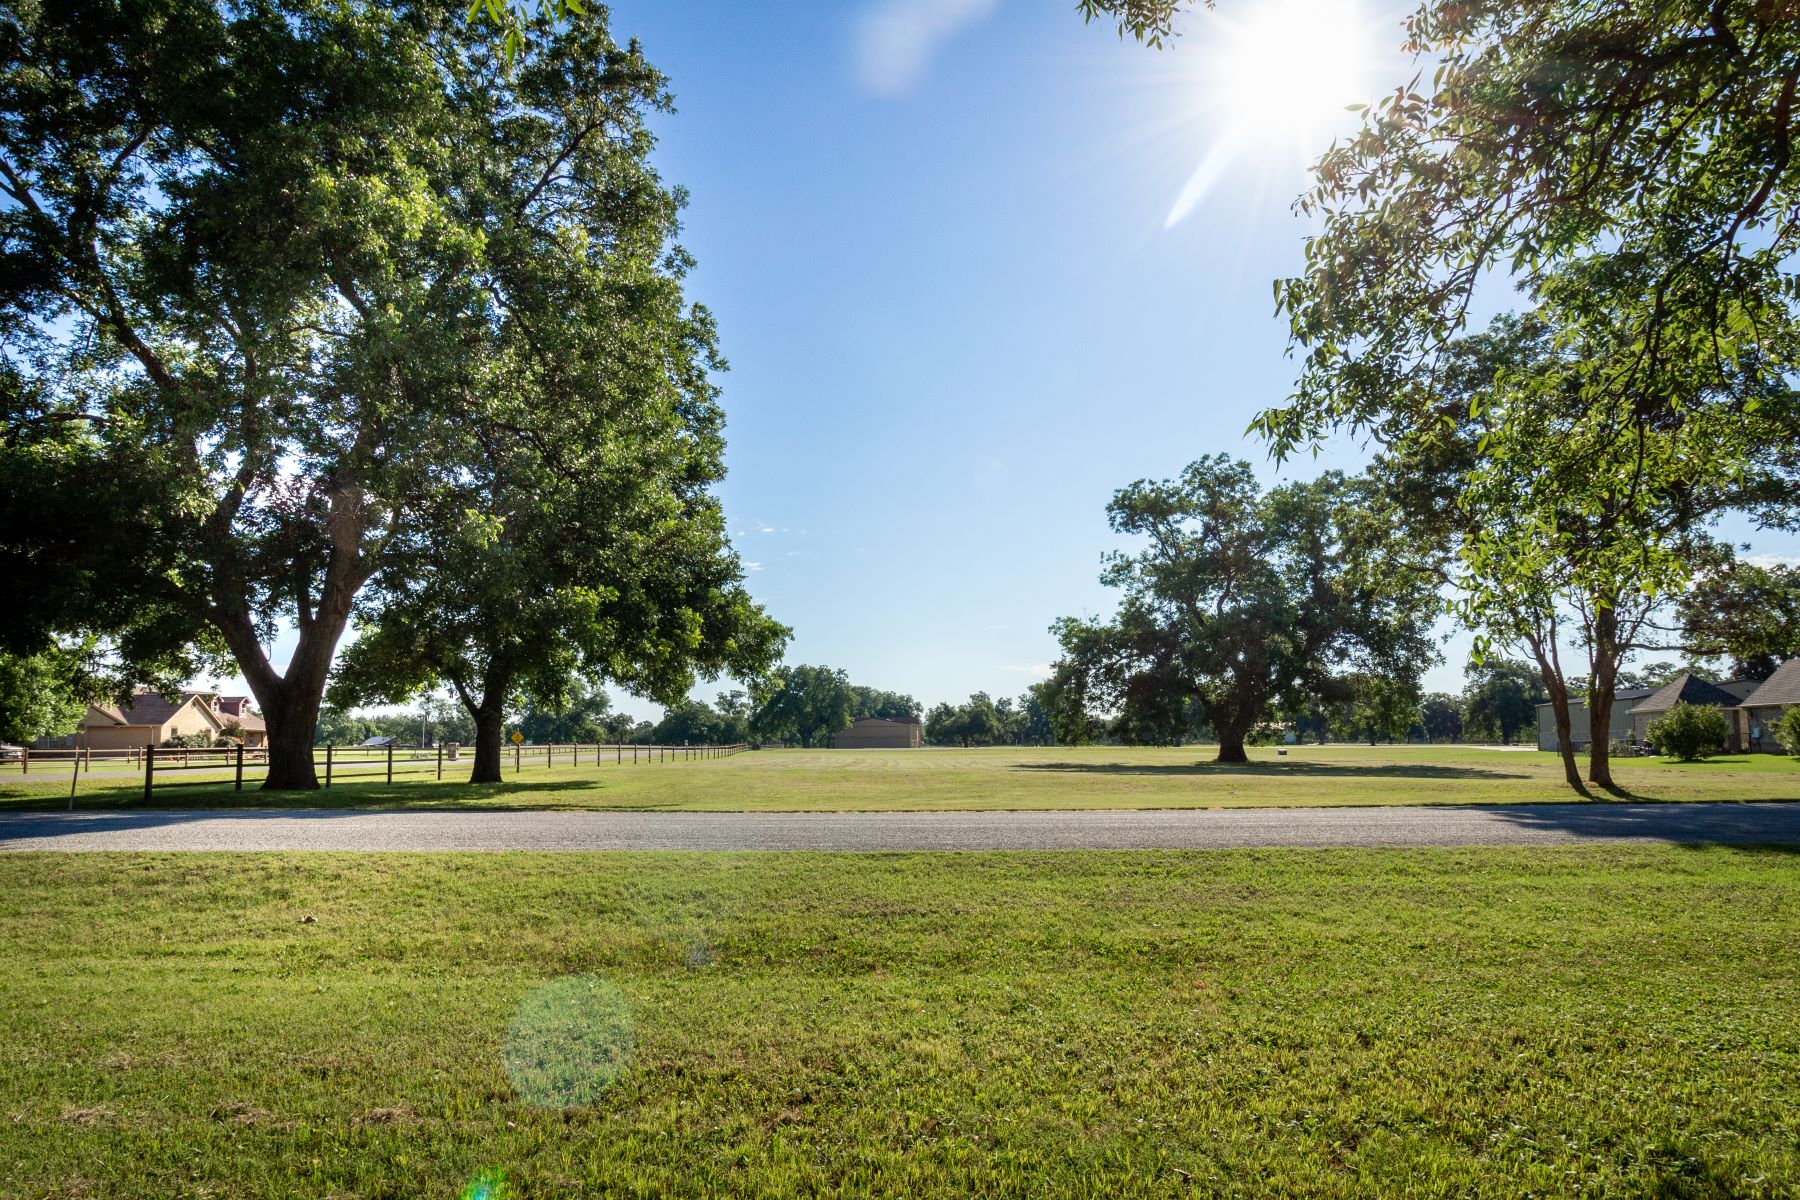 Land for Sale at Lot 1 Westmeadow Drive, Weatherford, TX, 76087 Lot 1 Westmeadow Drive Weatherford, Texas 76087 United States